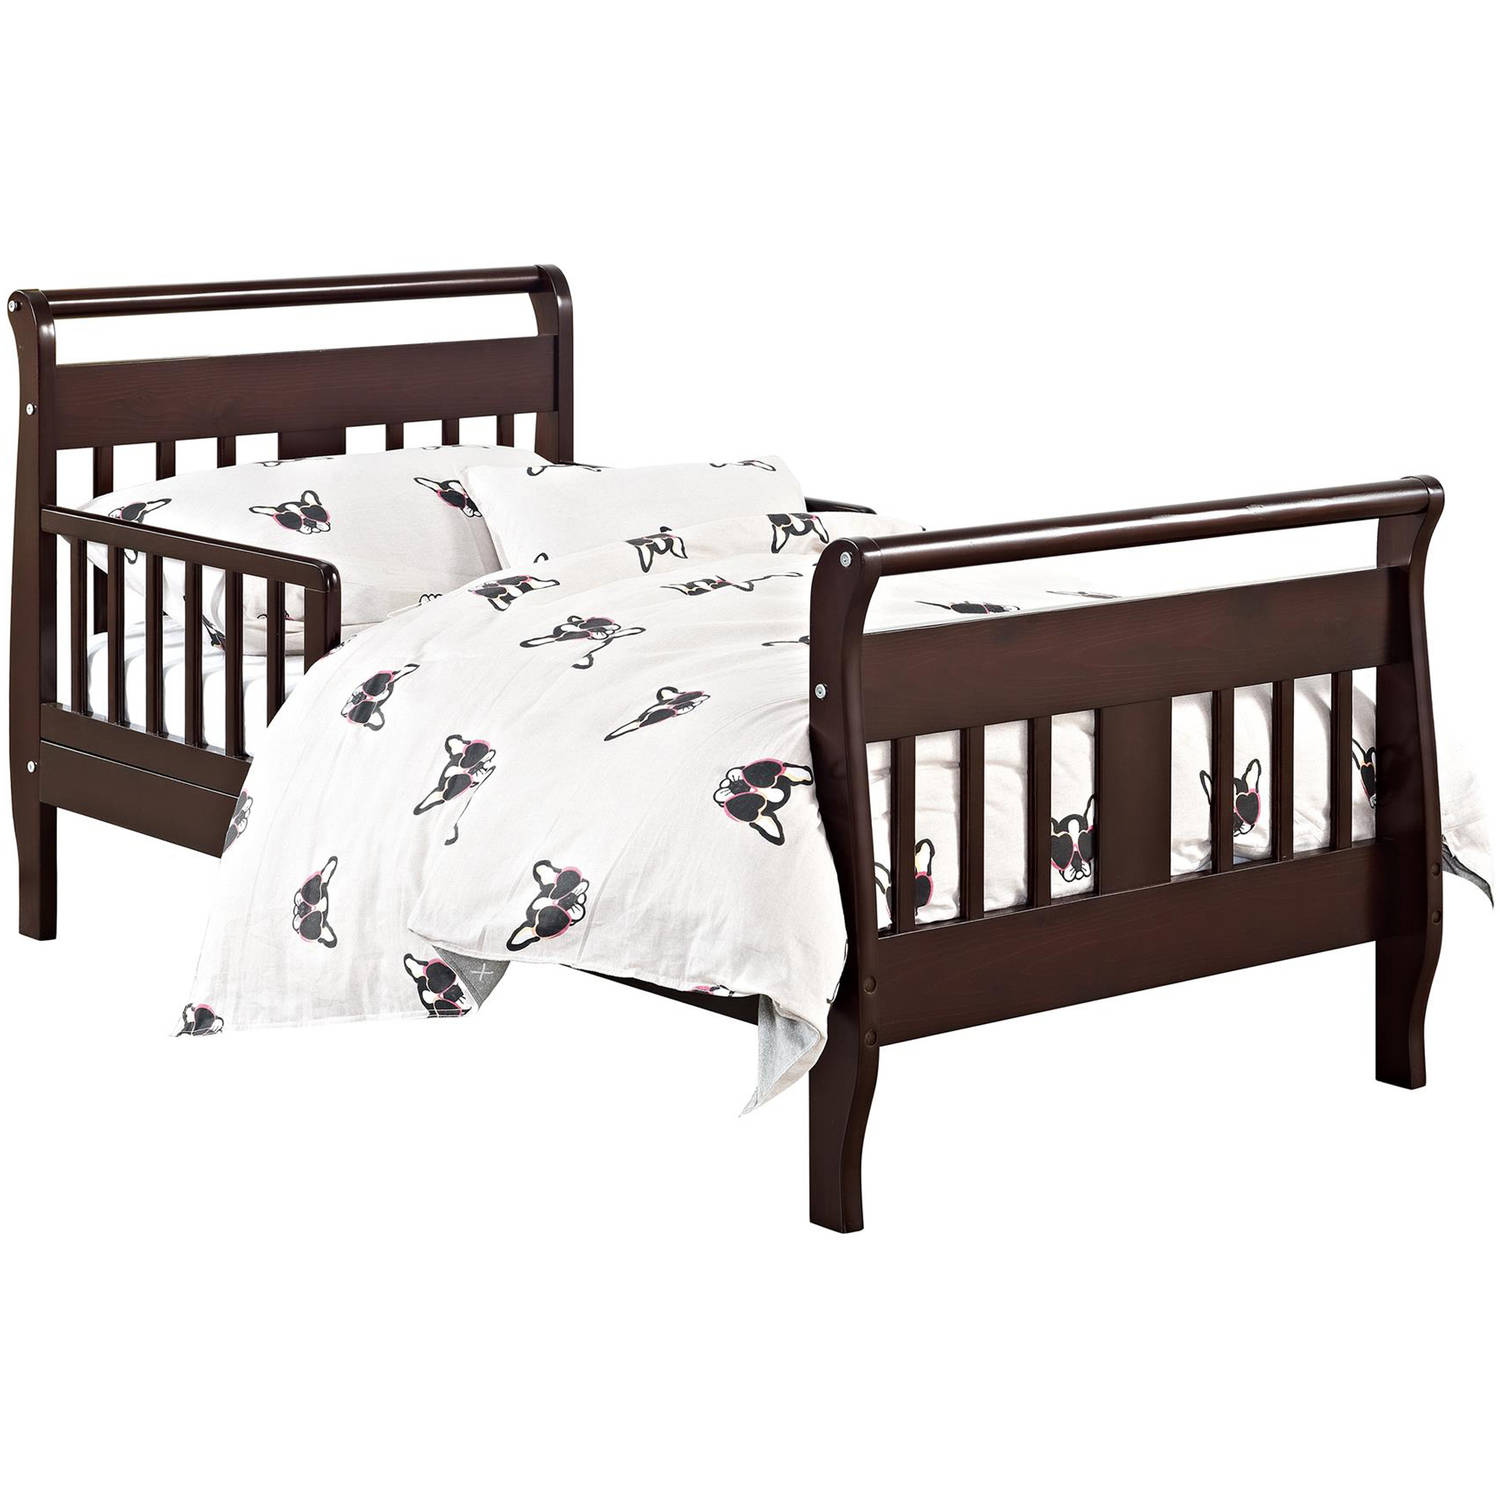 Baby Relax Sleigh Toddler Bed, Espresso